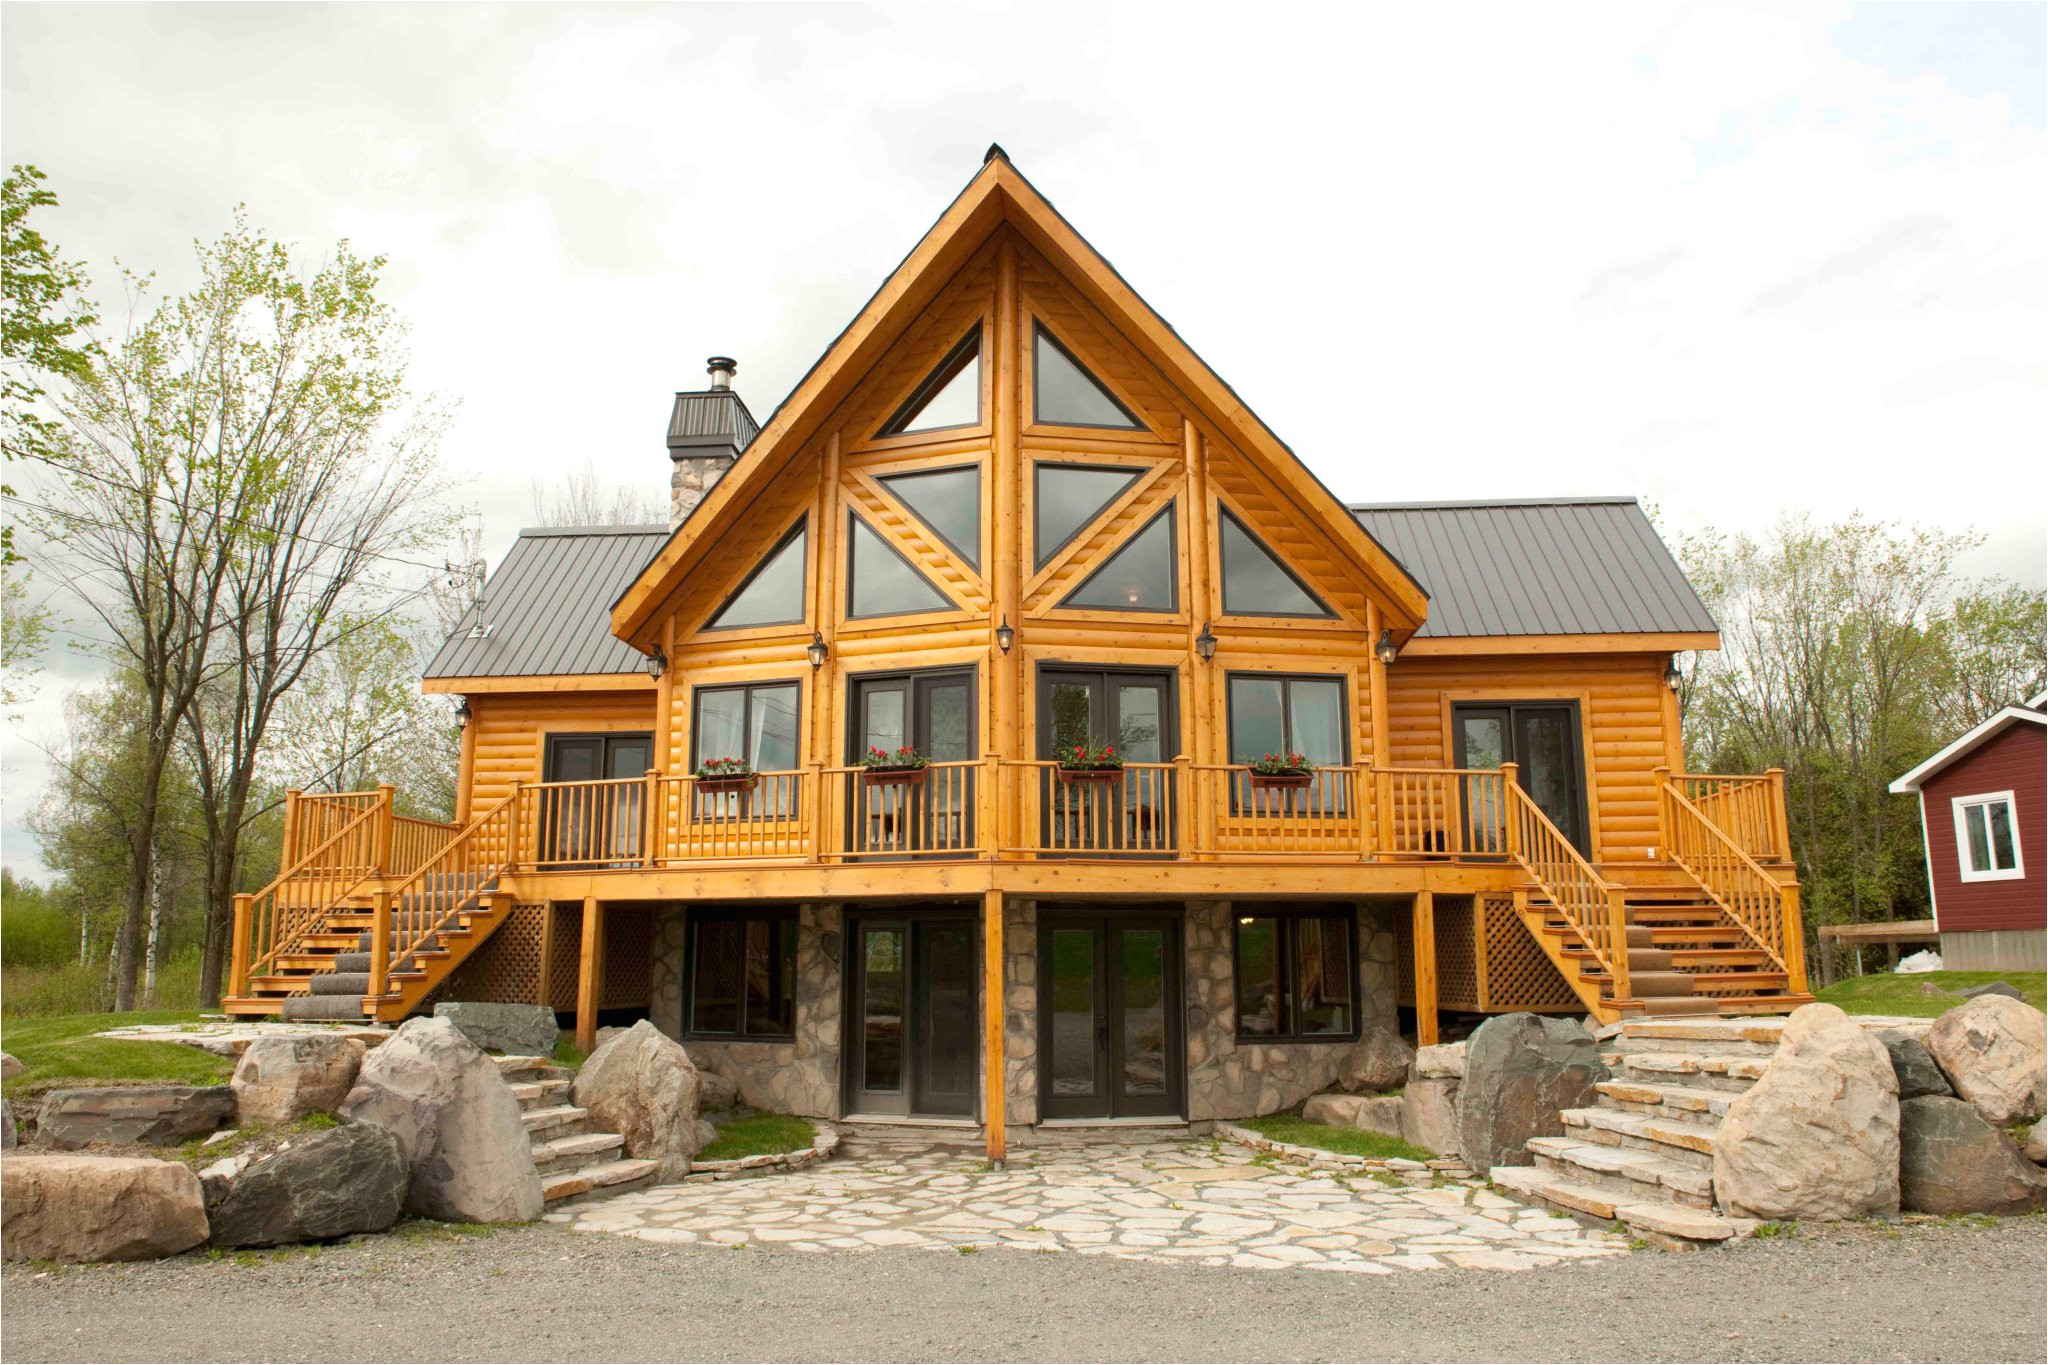 Timber Frame Home Plans Price Timber Block Faq How Much Does A Timber Block Log Home